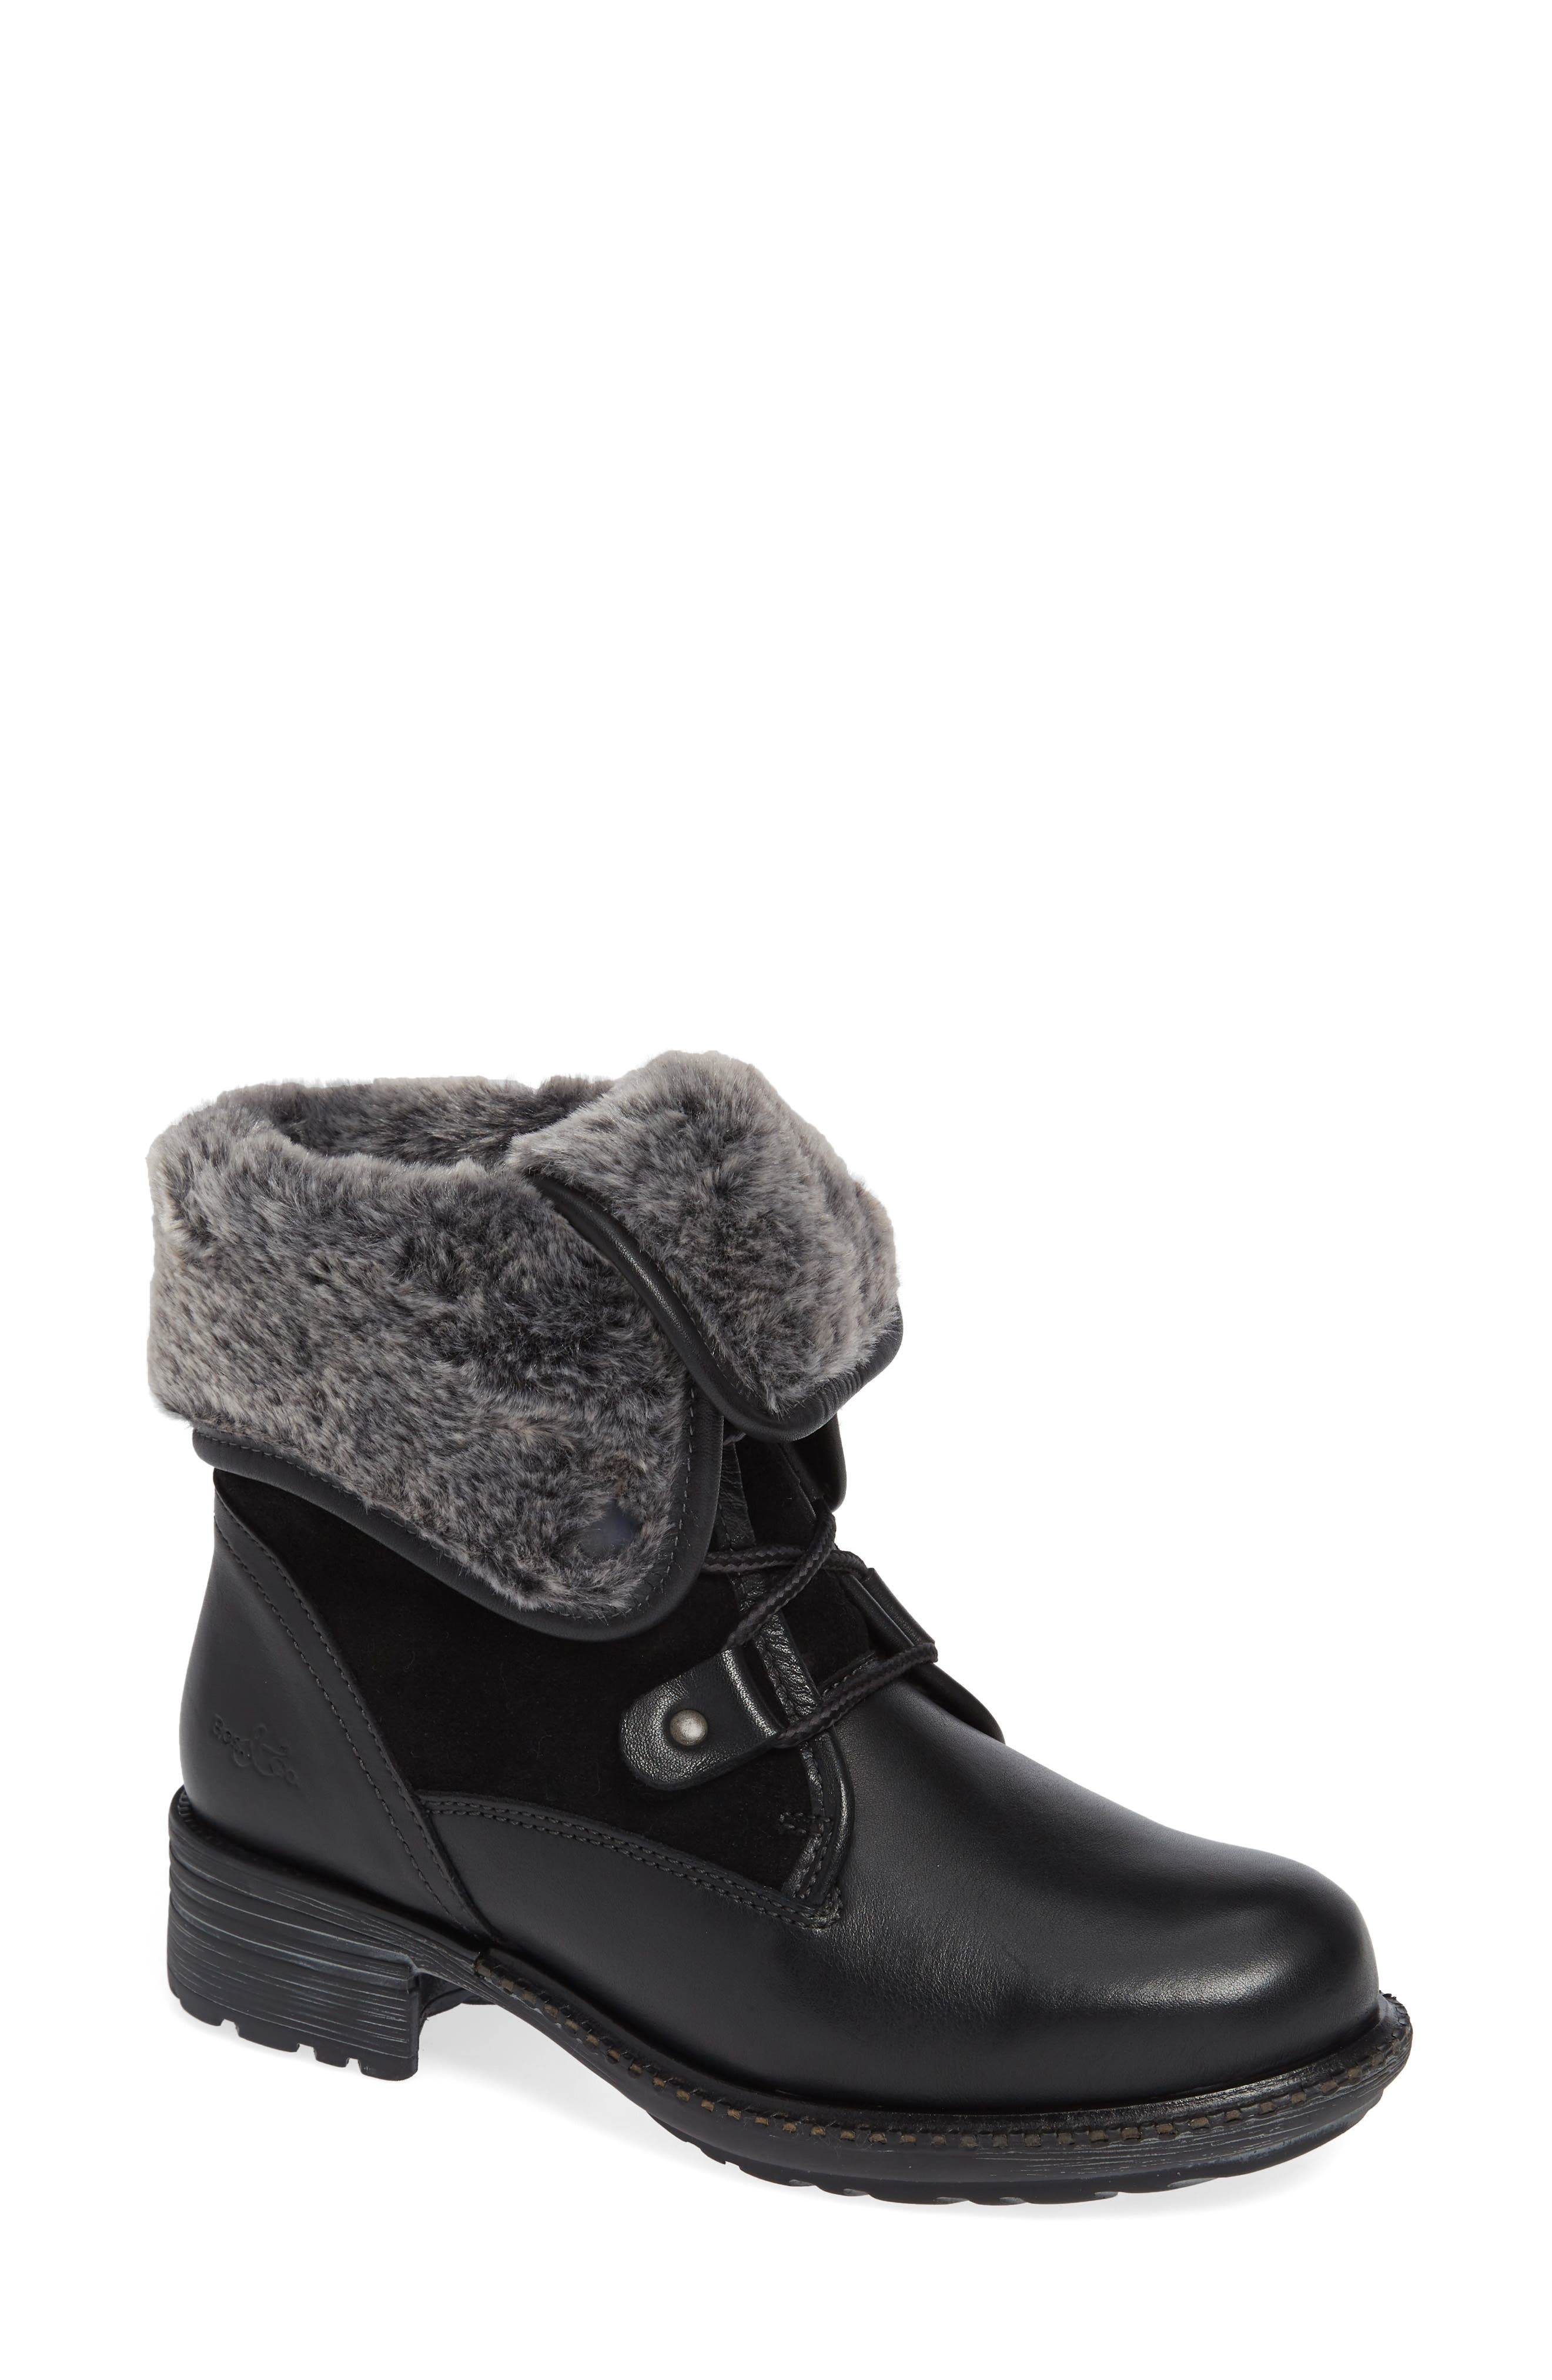 Springfield Waterproof Winter Boot,                         Main,                         color, BLACK LEATHER